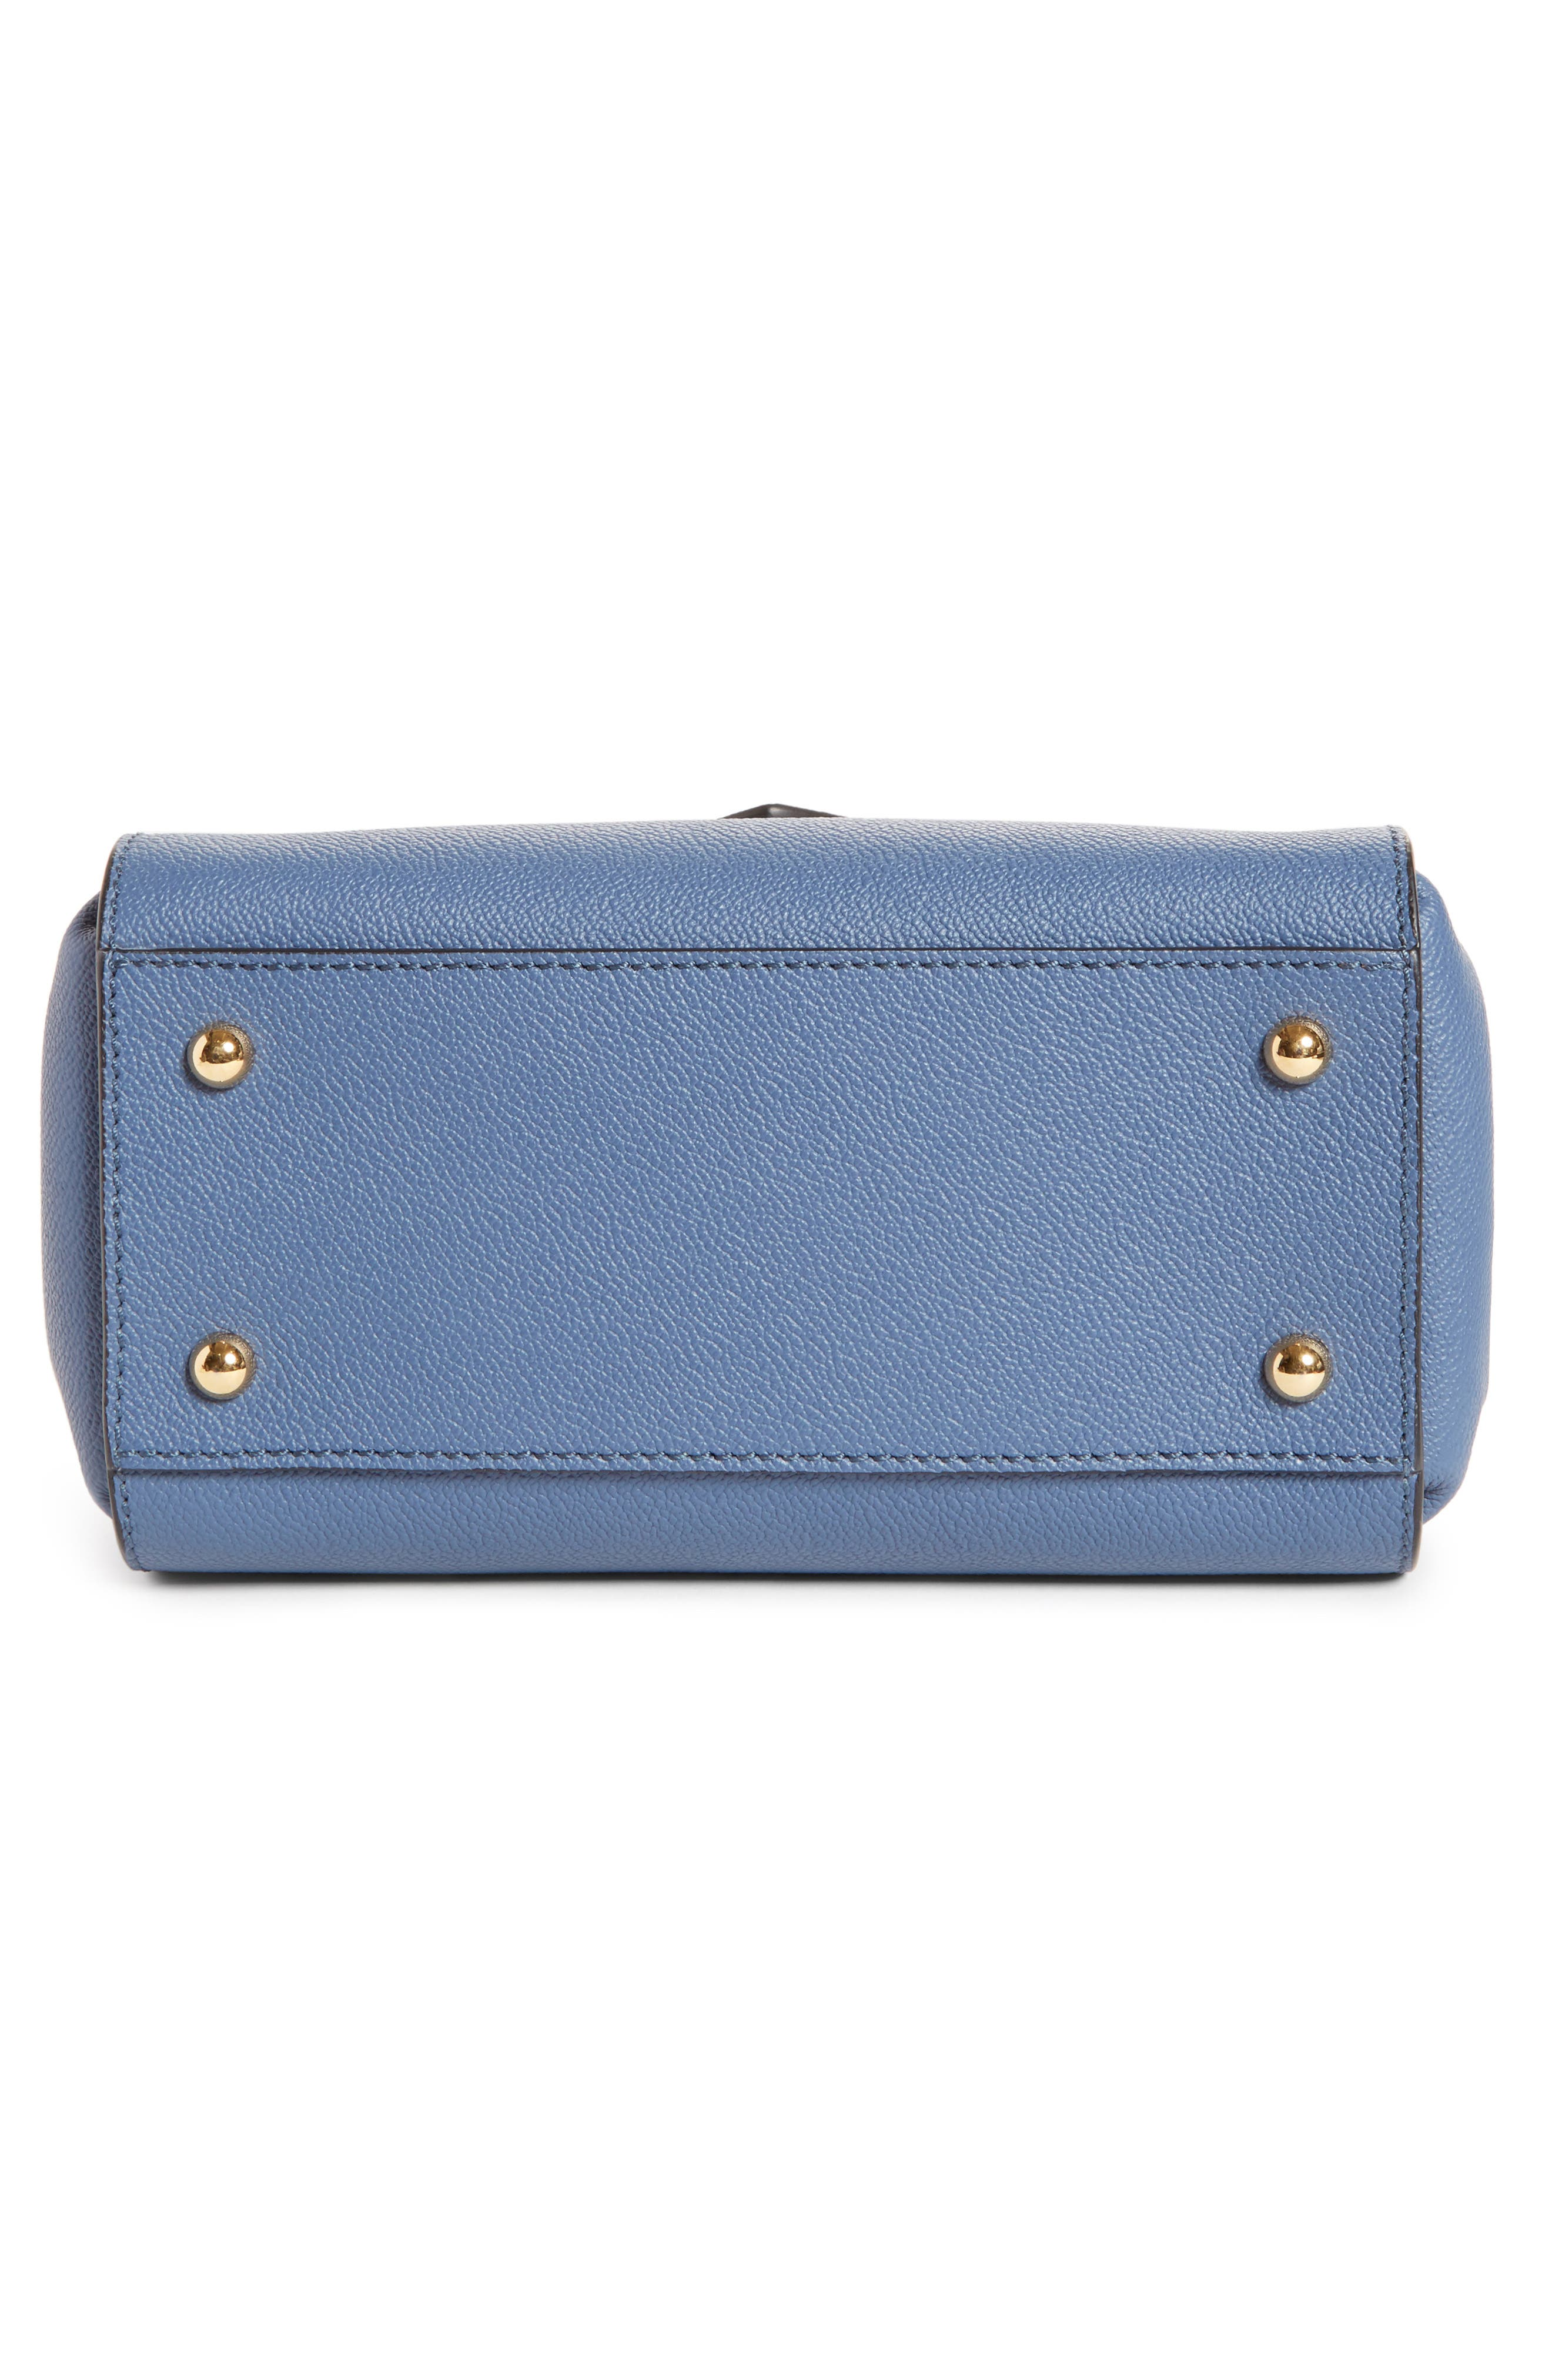 Small Buckle Leather Satchel,                             Alternate thumbnail 6, color,                             409